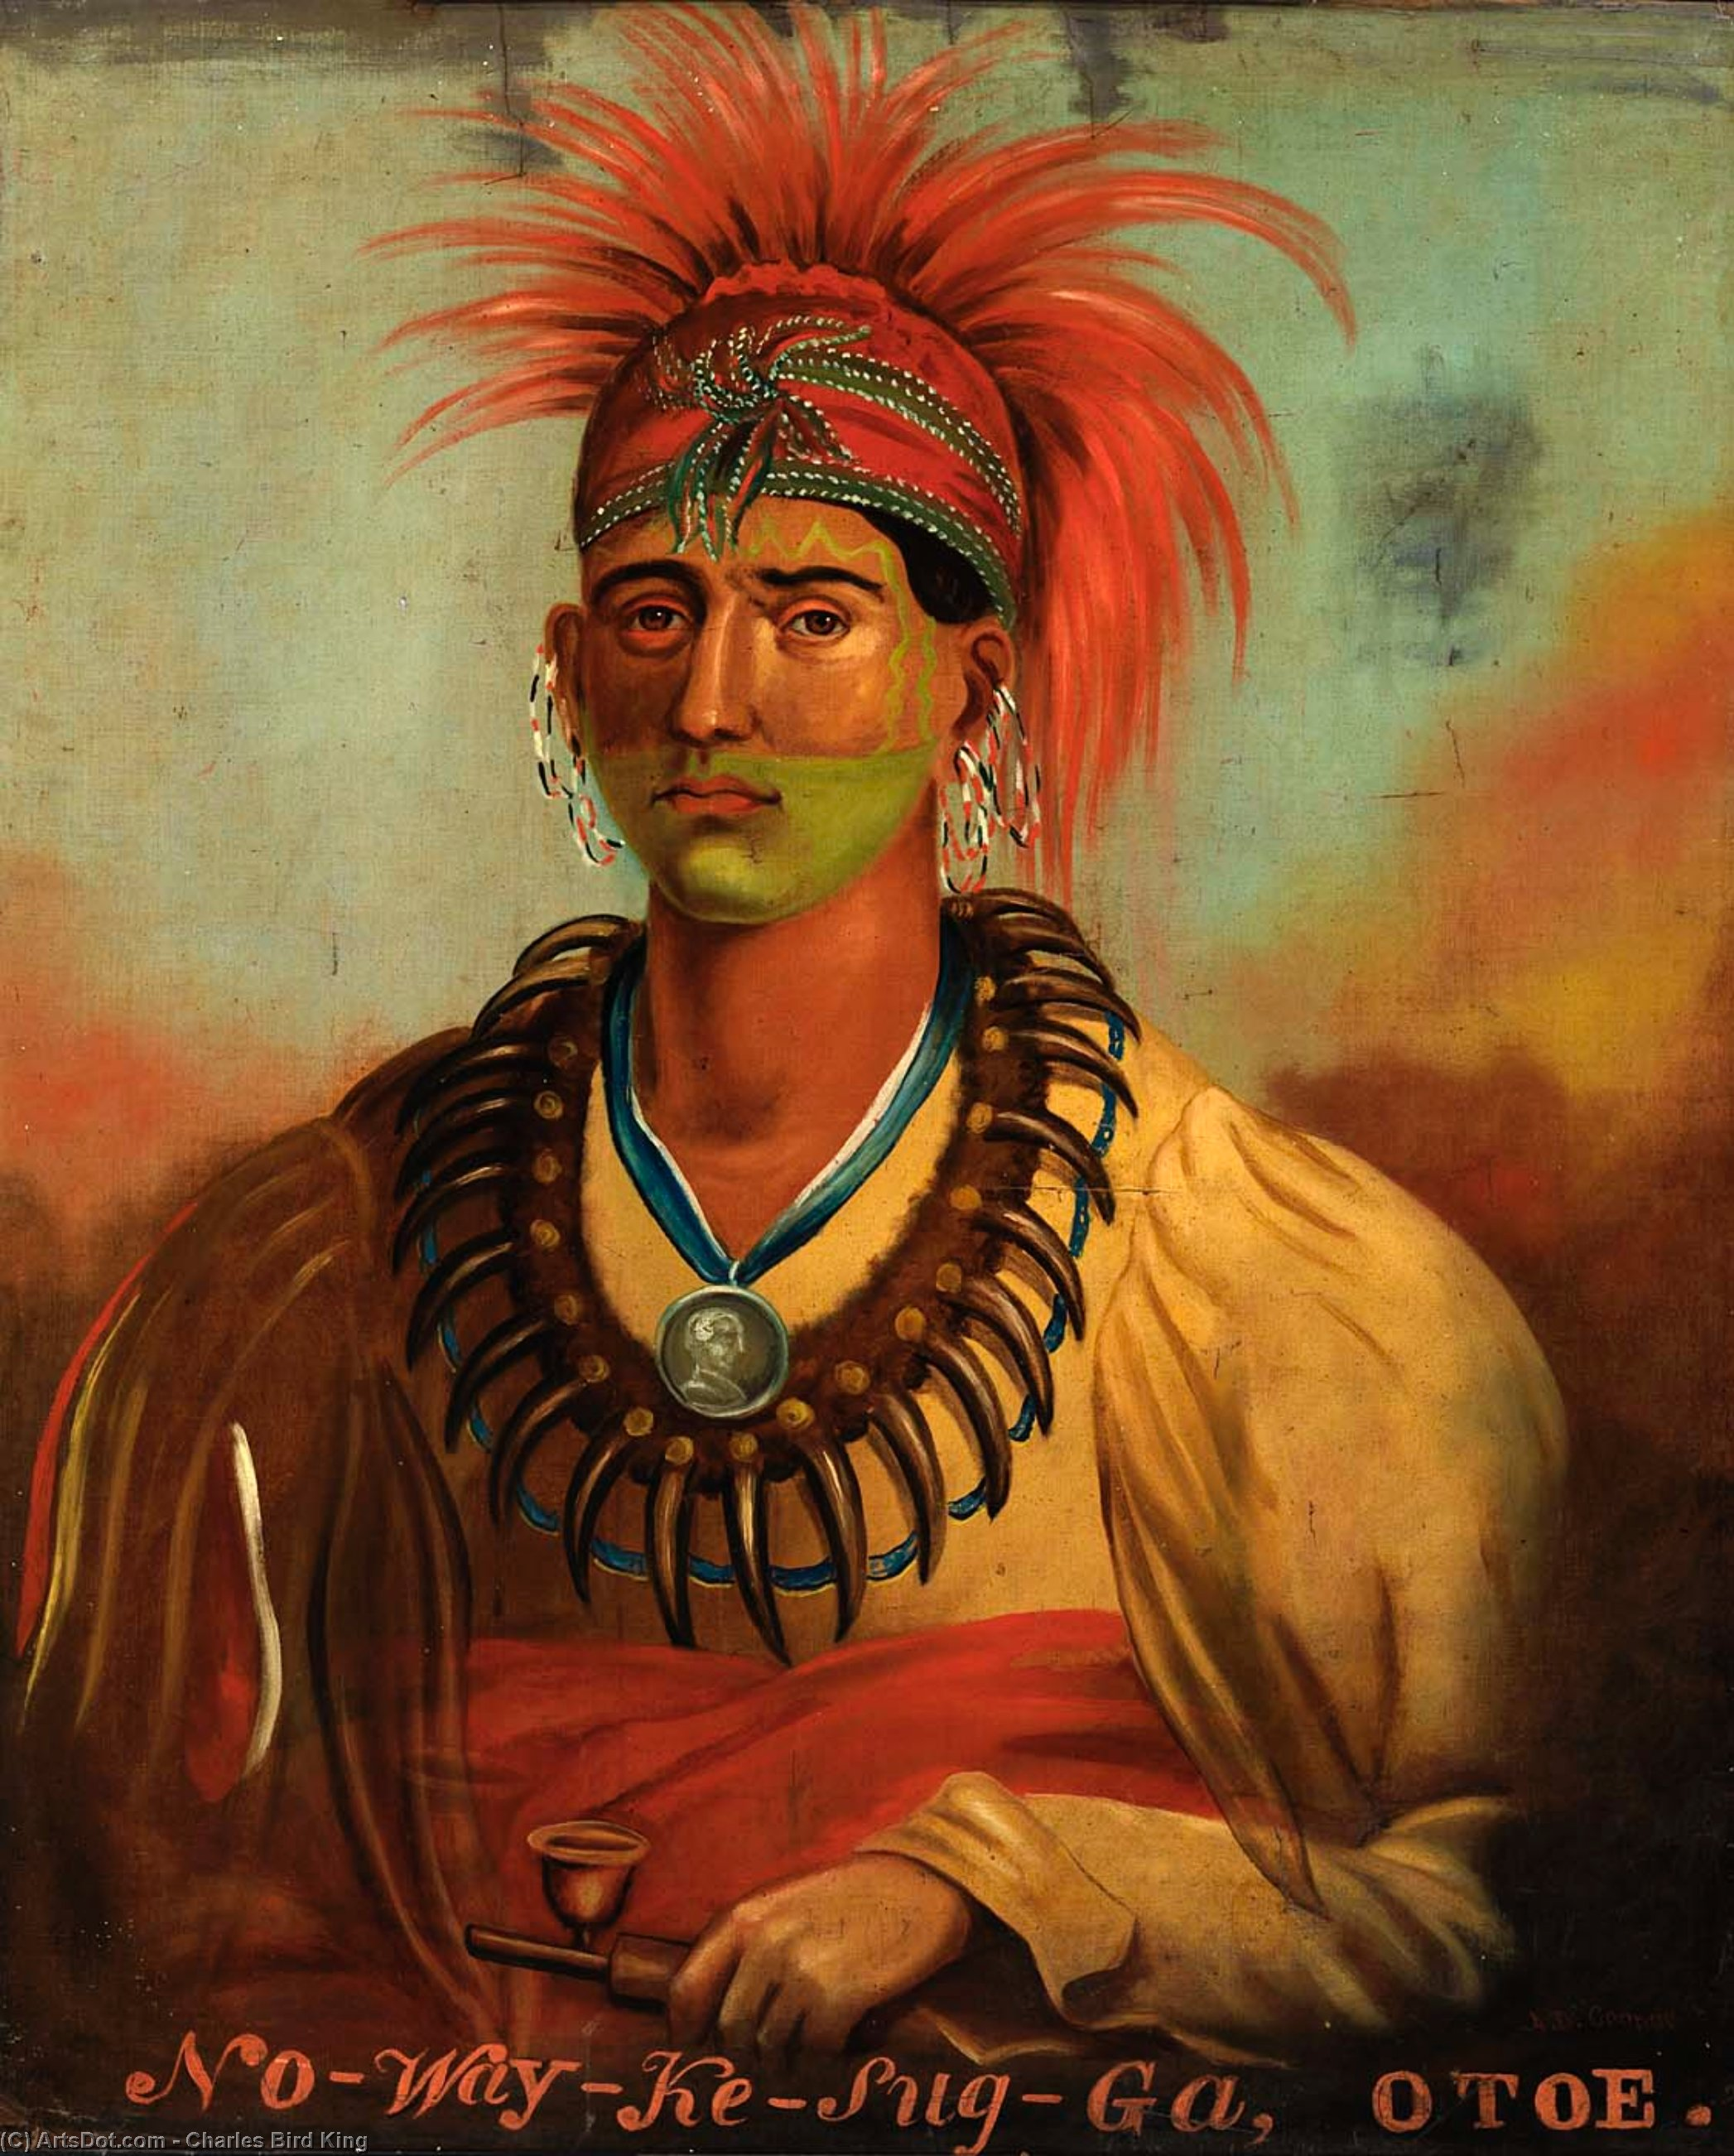 No-way-ke-sug-ga, Oil by Charles Bird King (1785-1862, United States)